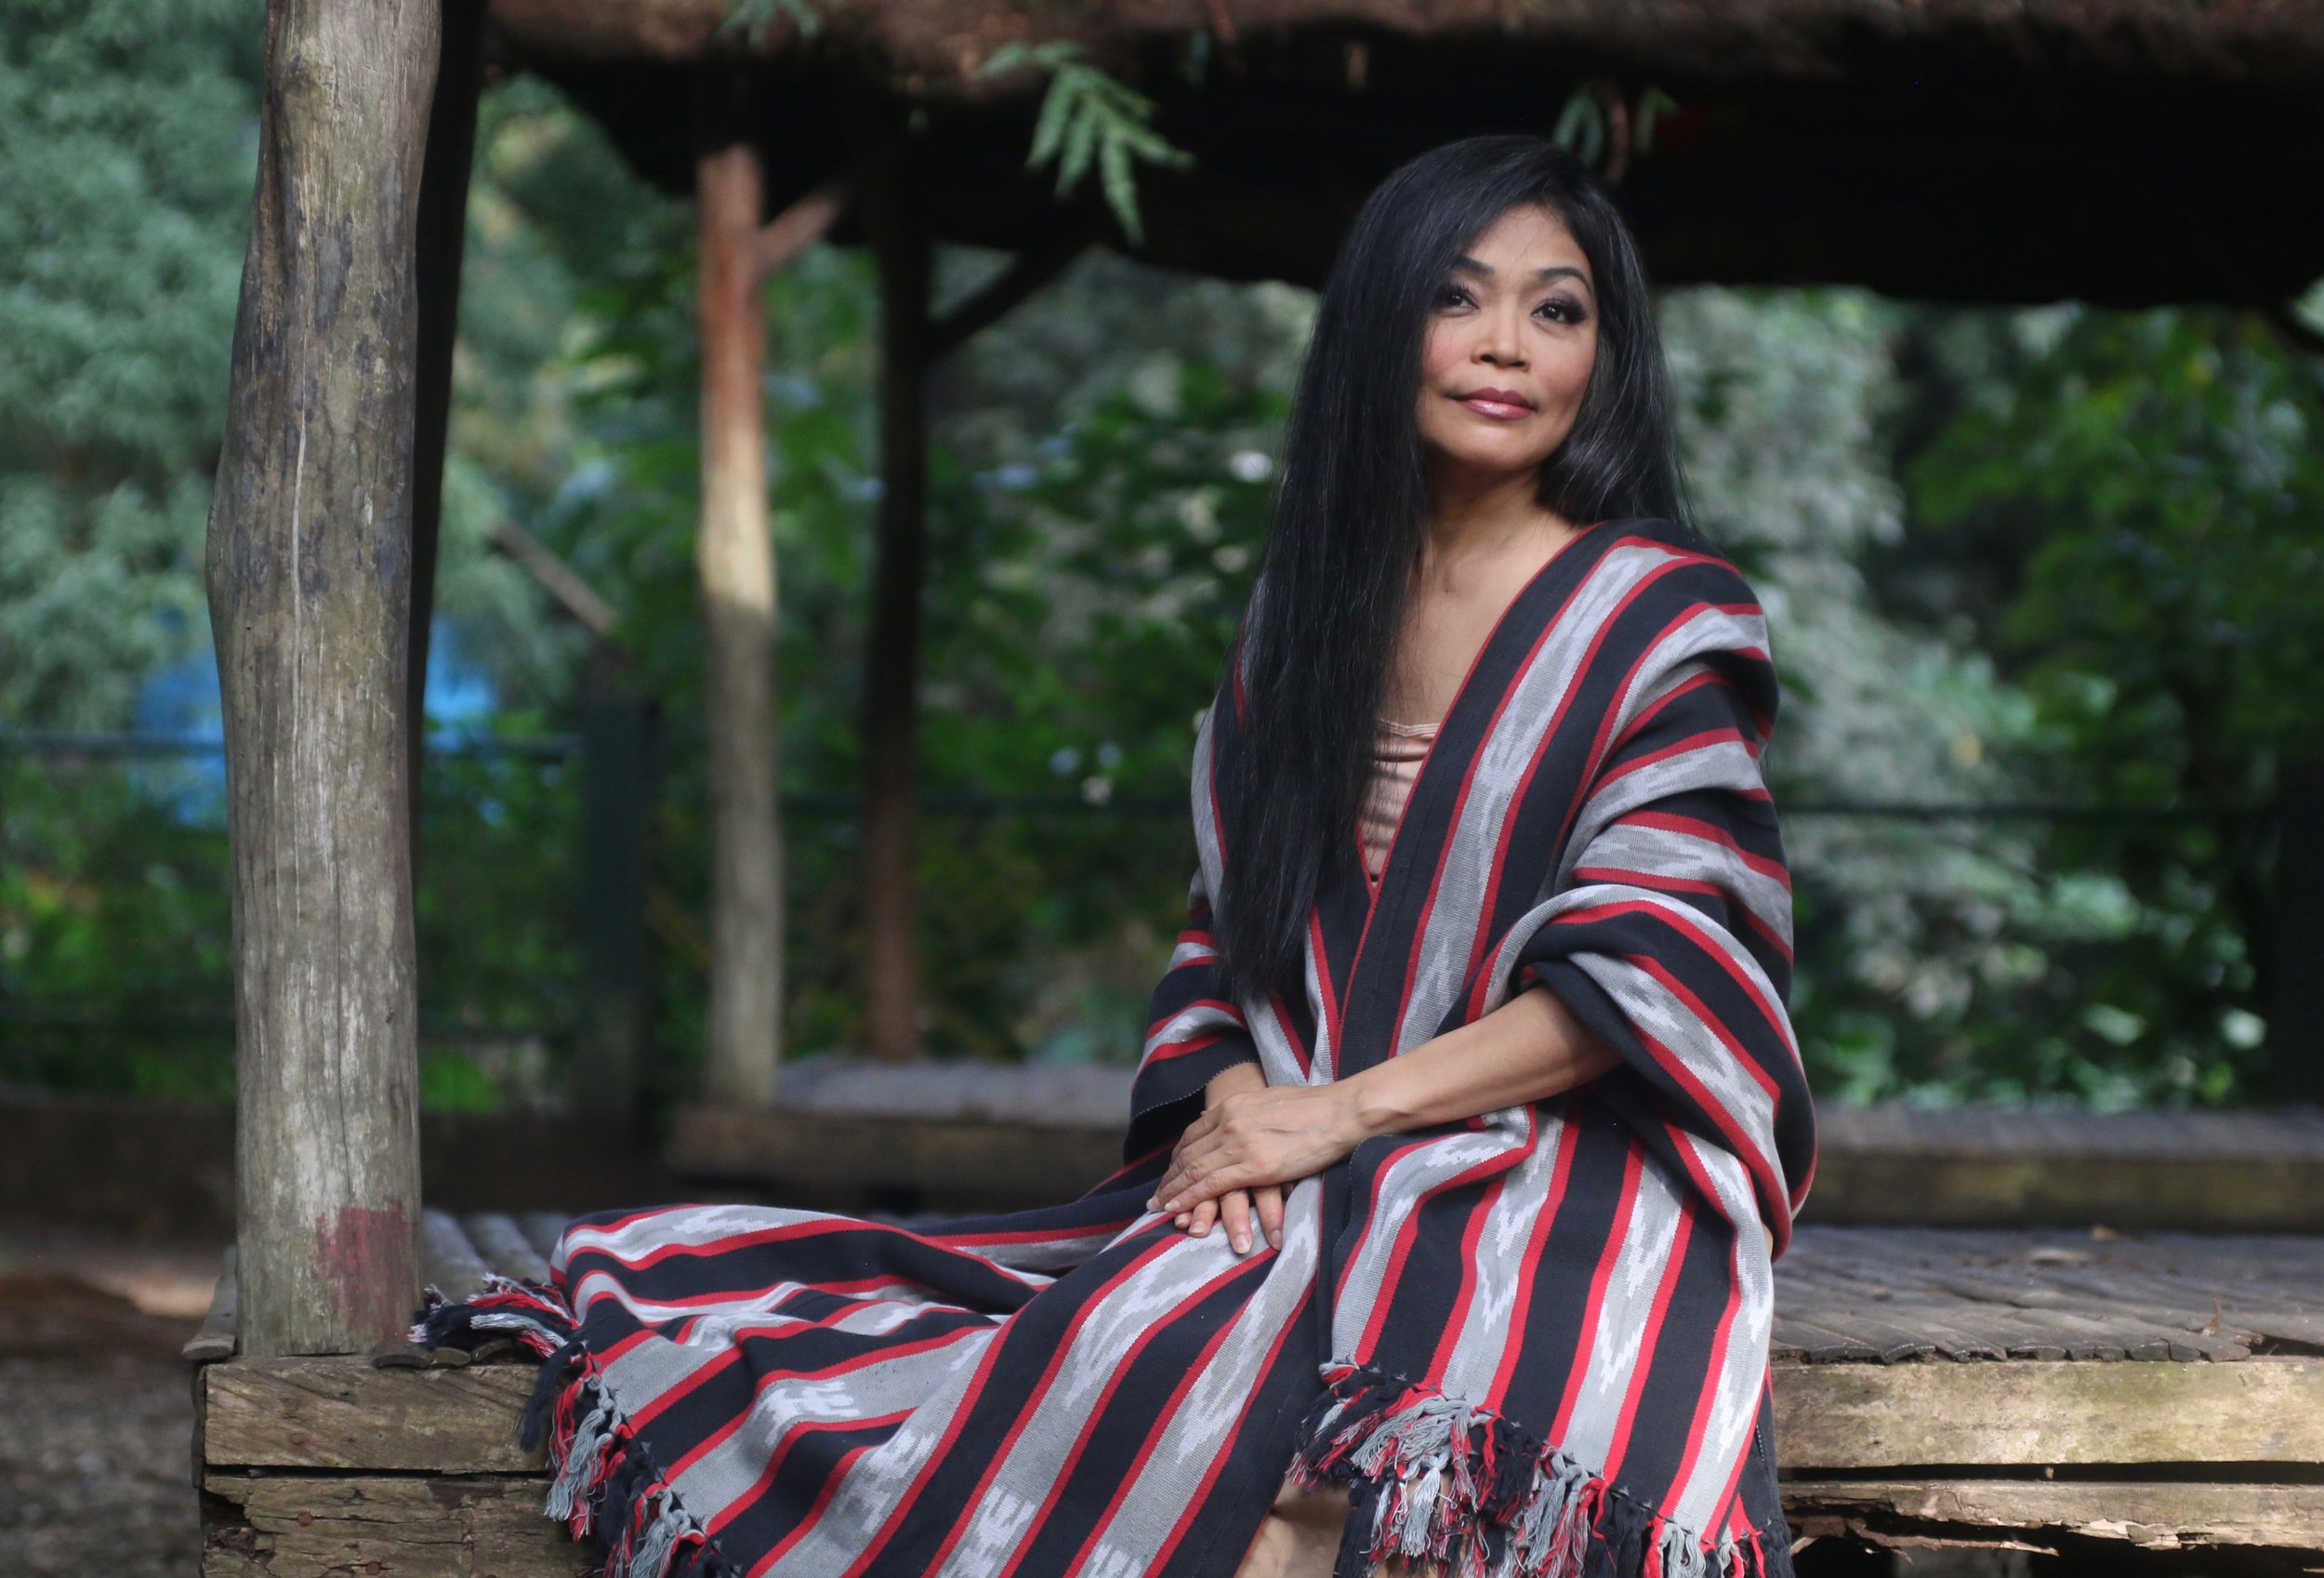 Grace Nono - From Agusan, Northeastern Mindanao, Grace Nono is a singer and scholar specializing in the performance of Philippine oral chants with sacred themes. Grace Nono will be joined by guest artists including Charles Wandag from the Cordillera region who will perform Kalinga chants, tongatong (stamping tubes), and gangsa (gongs).